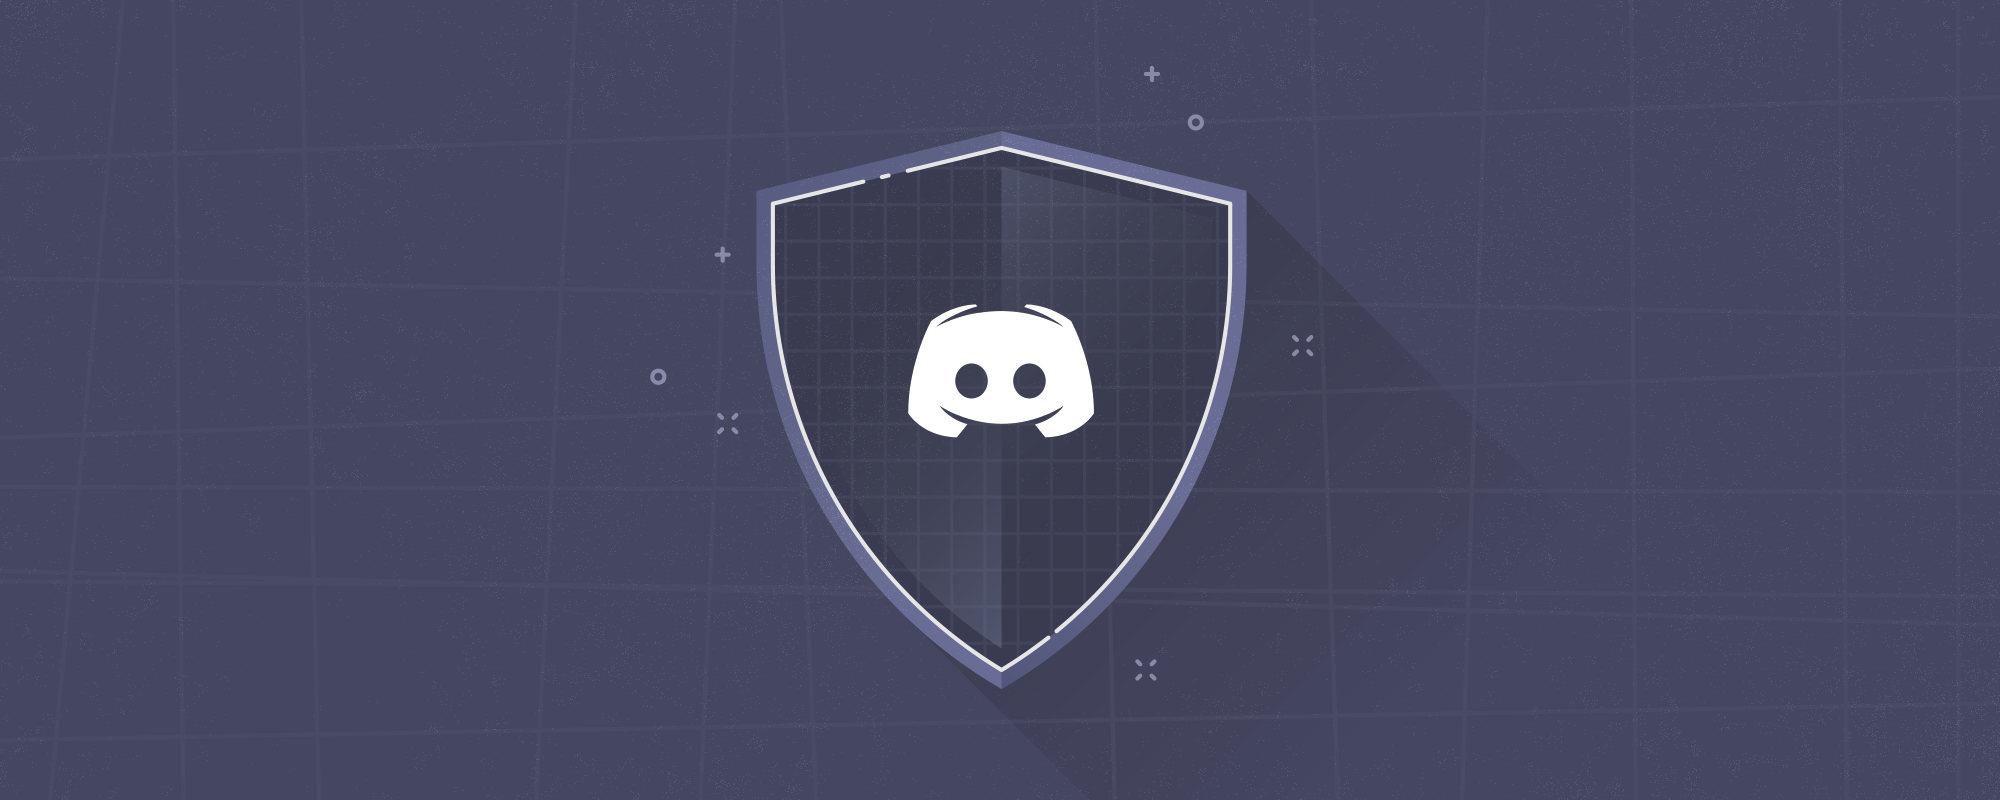 Discord Safety Boost - Discord Blog